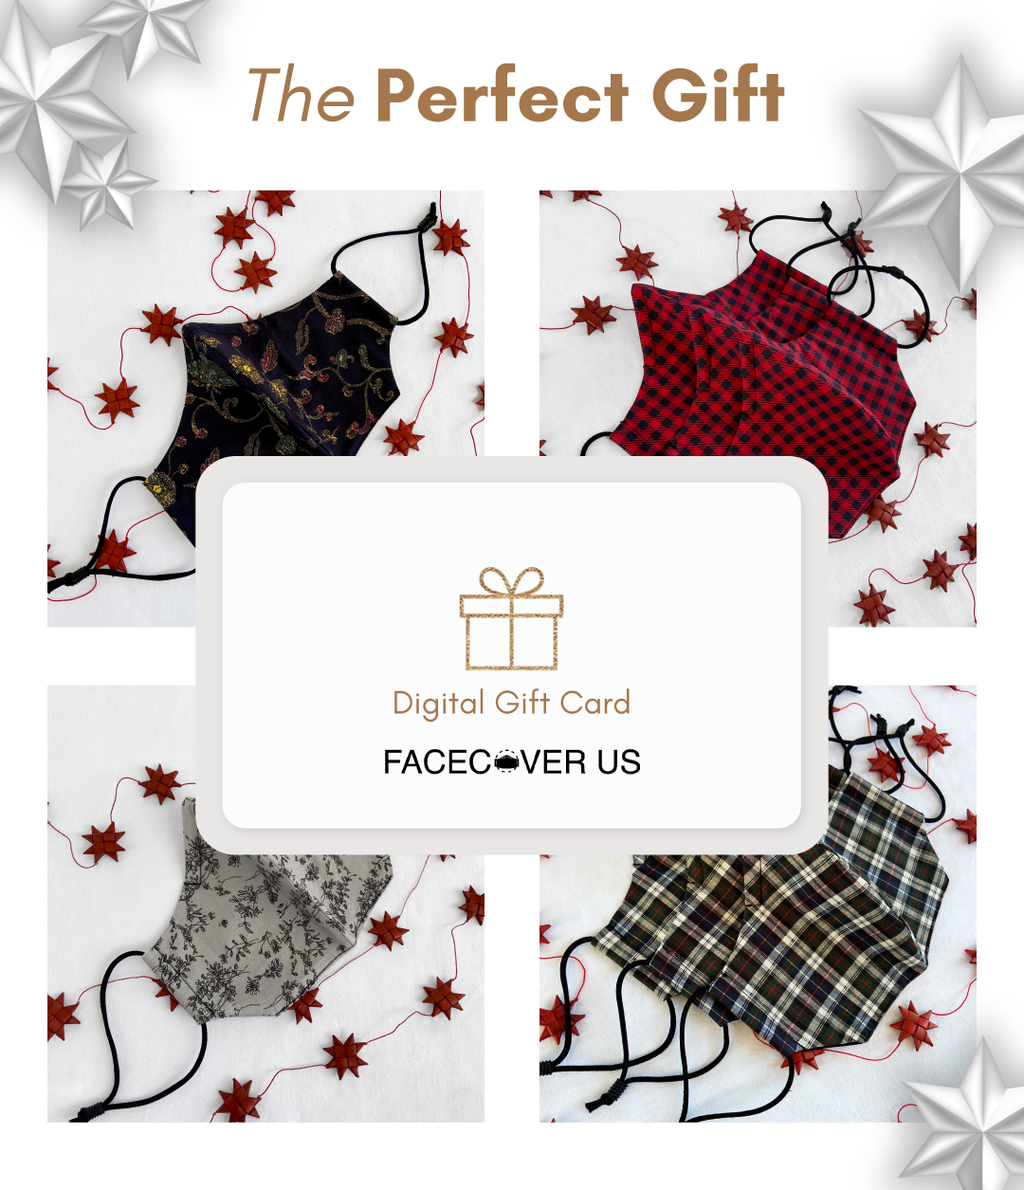 GIFT CARD - FacecoverUS